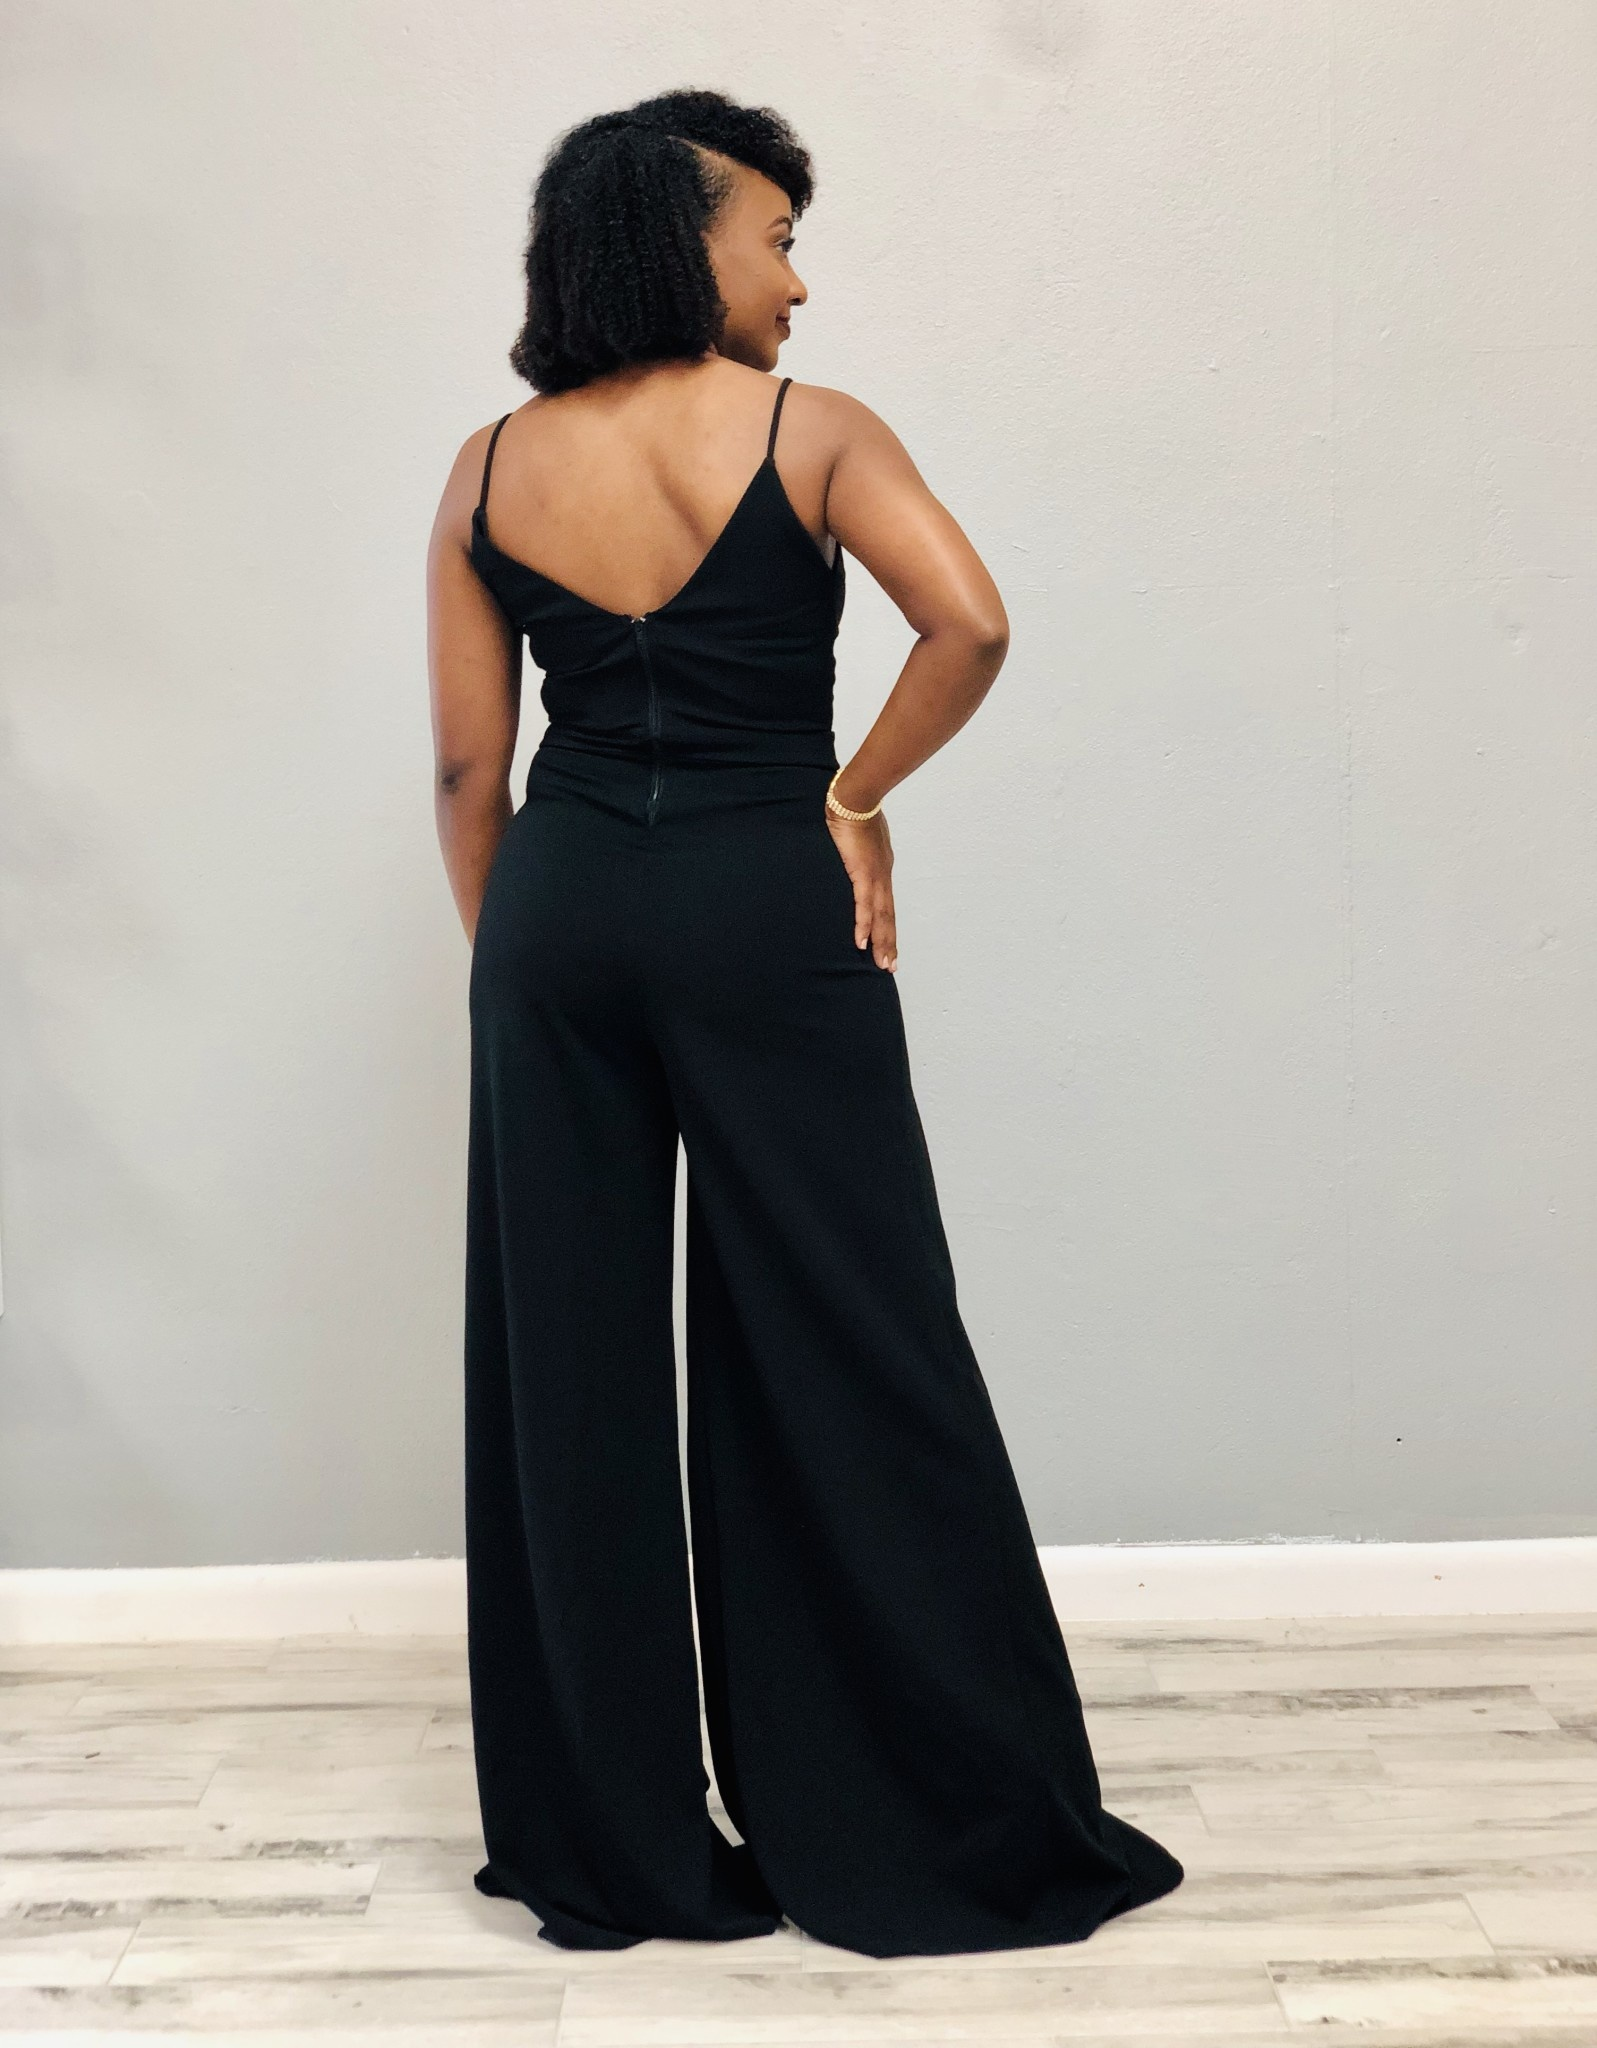 Large & In Charge Ruffle Jumpsuit